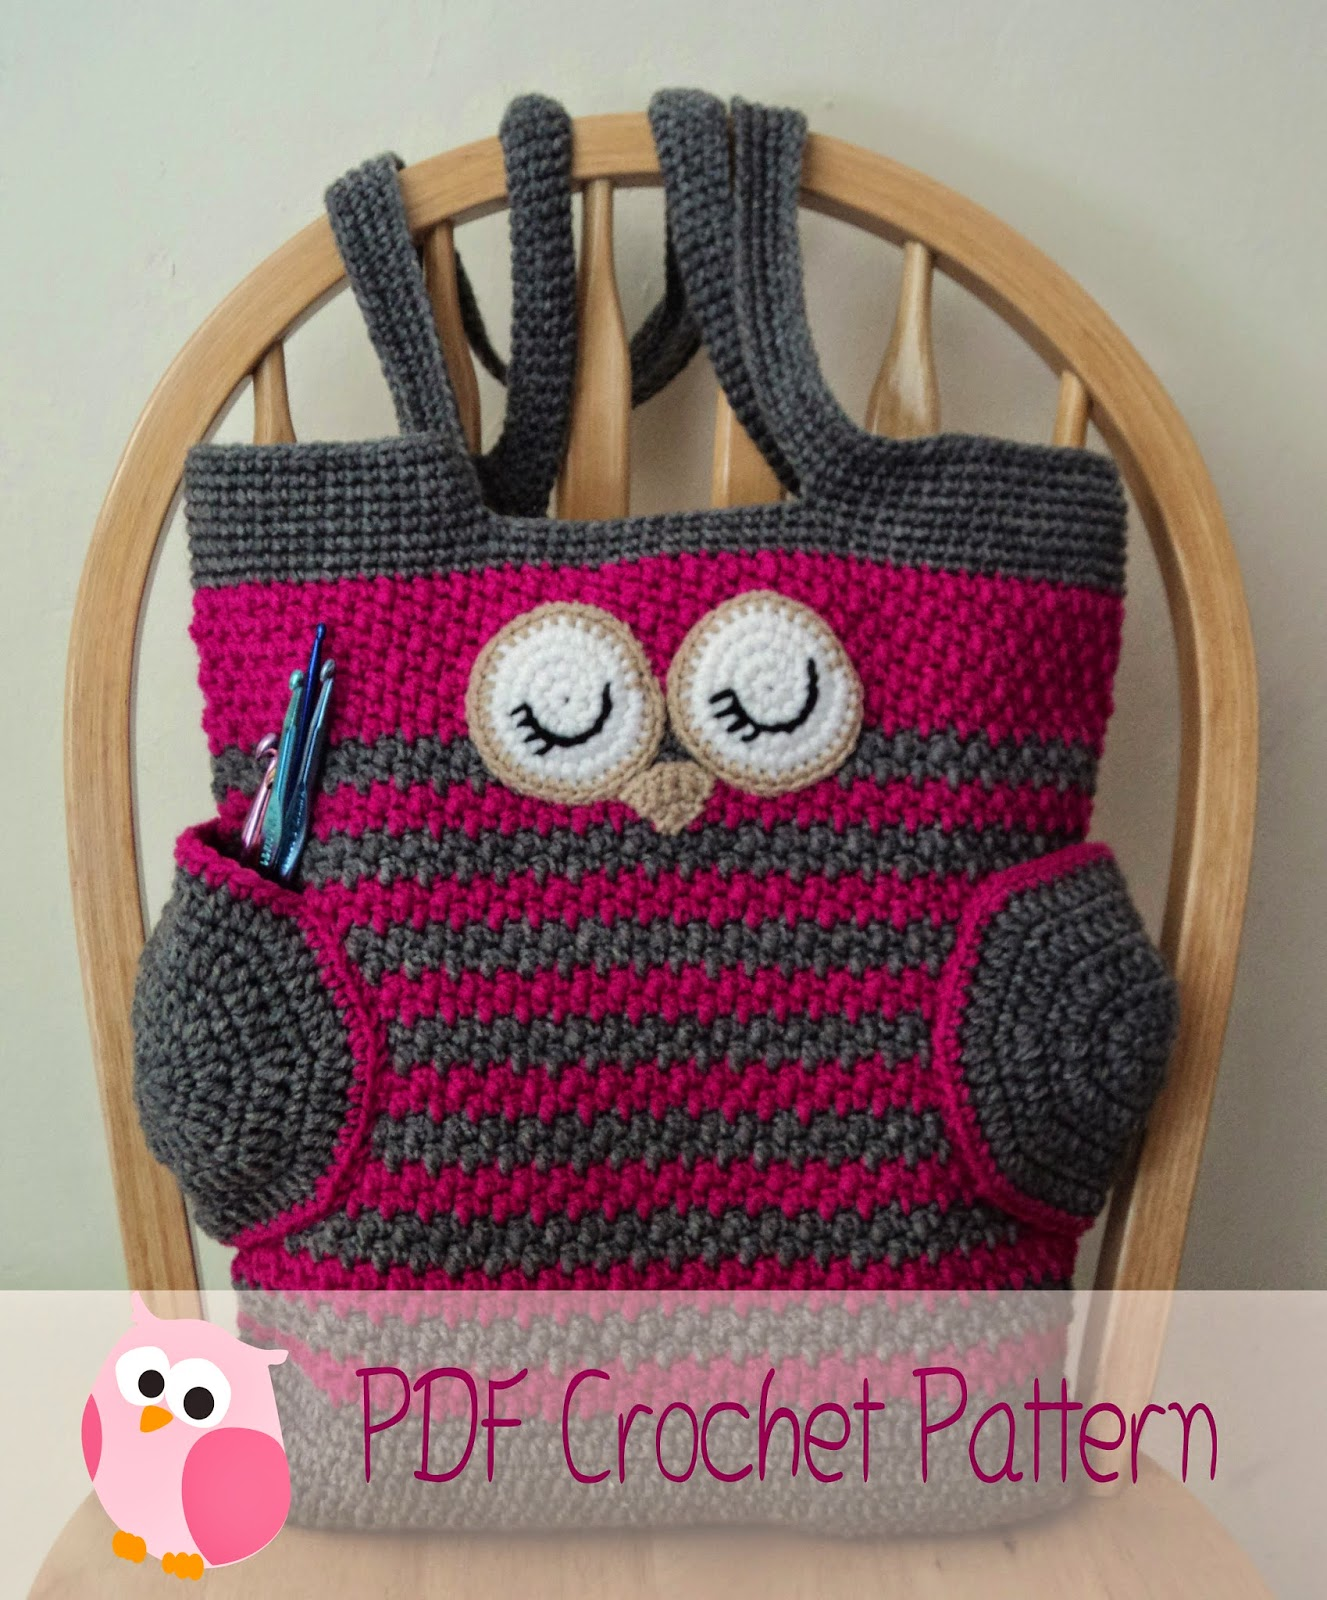 Free crochet baby bag patterns manet for free crochet patterns for diaper bags images bankloansurffo Gallery